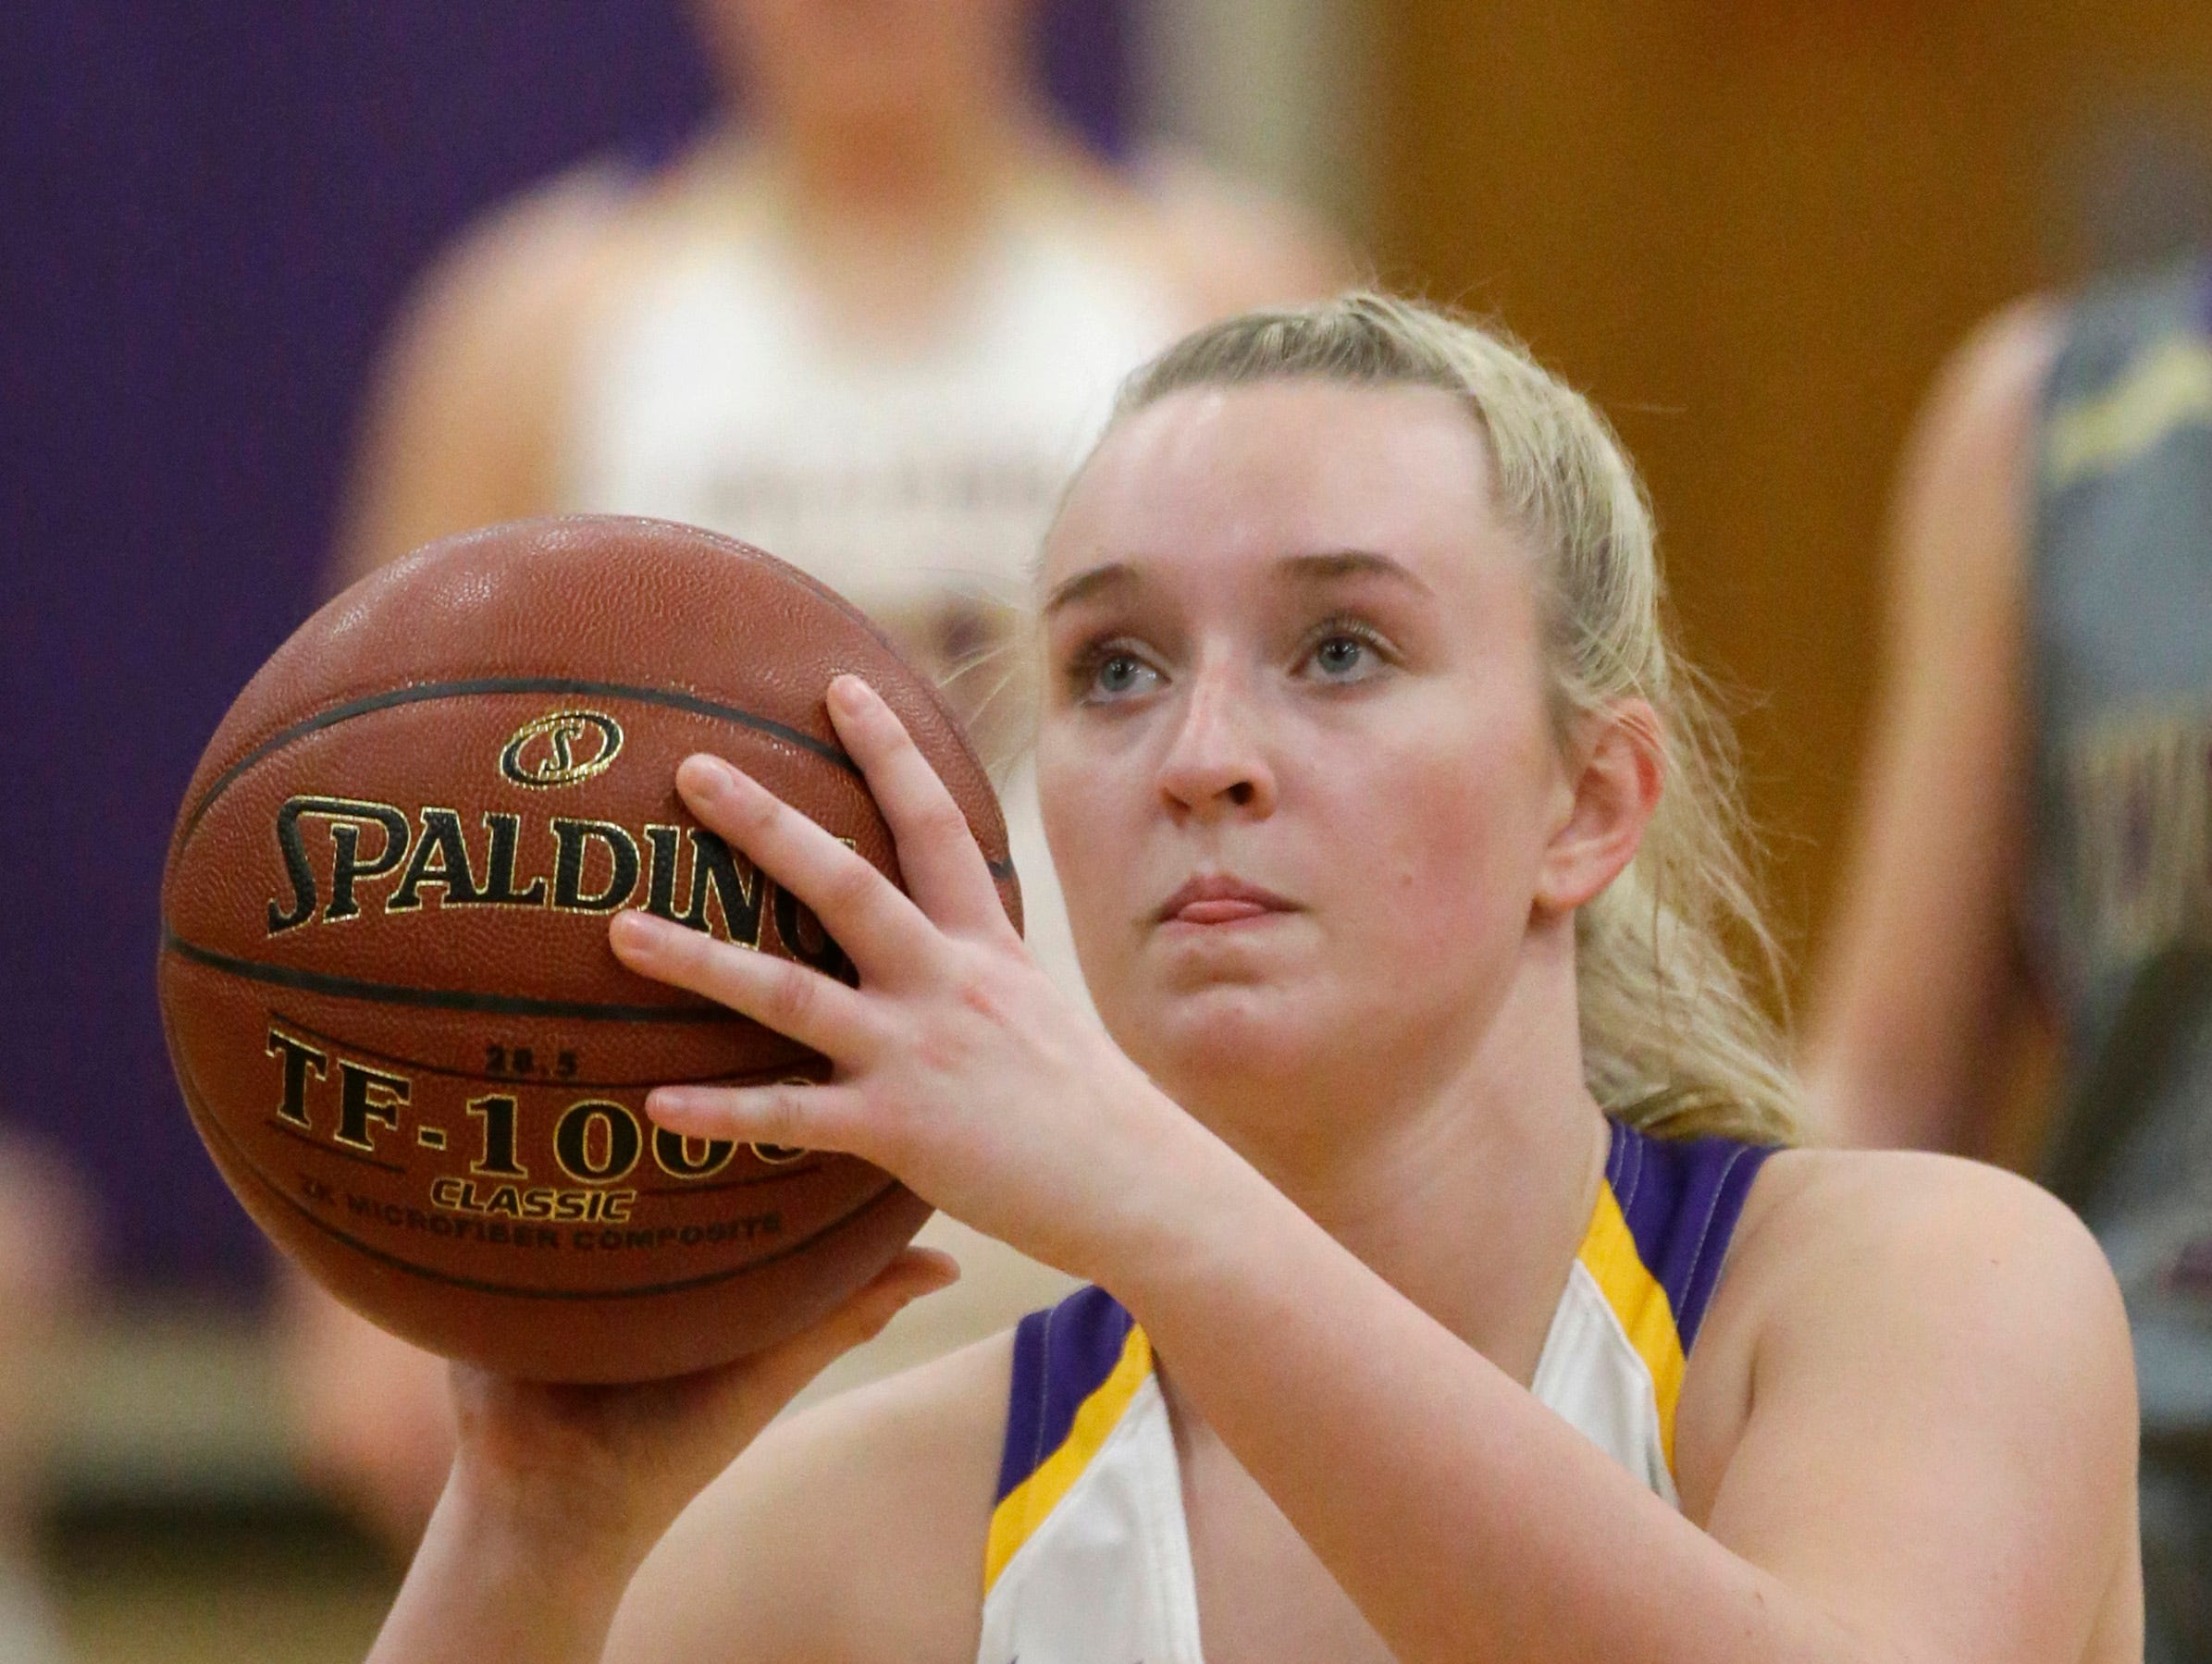 Sheboygan Falls' Kayla Zeier (13) aims a free throw against Two Rivers, Thursday, February 14, 2019, in Sheboygan Falls, Wis.